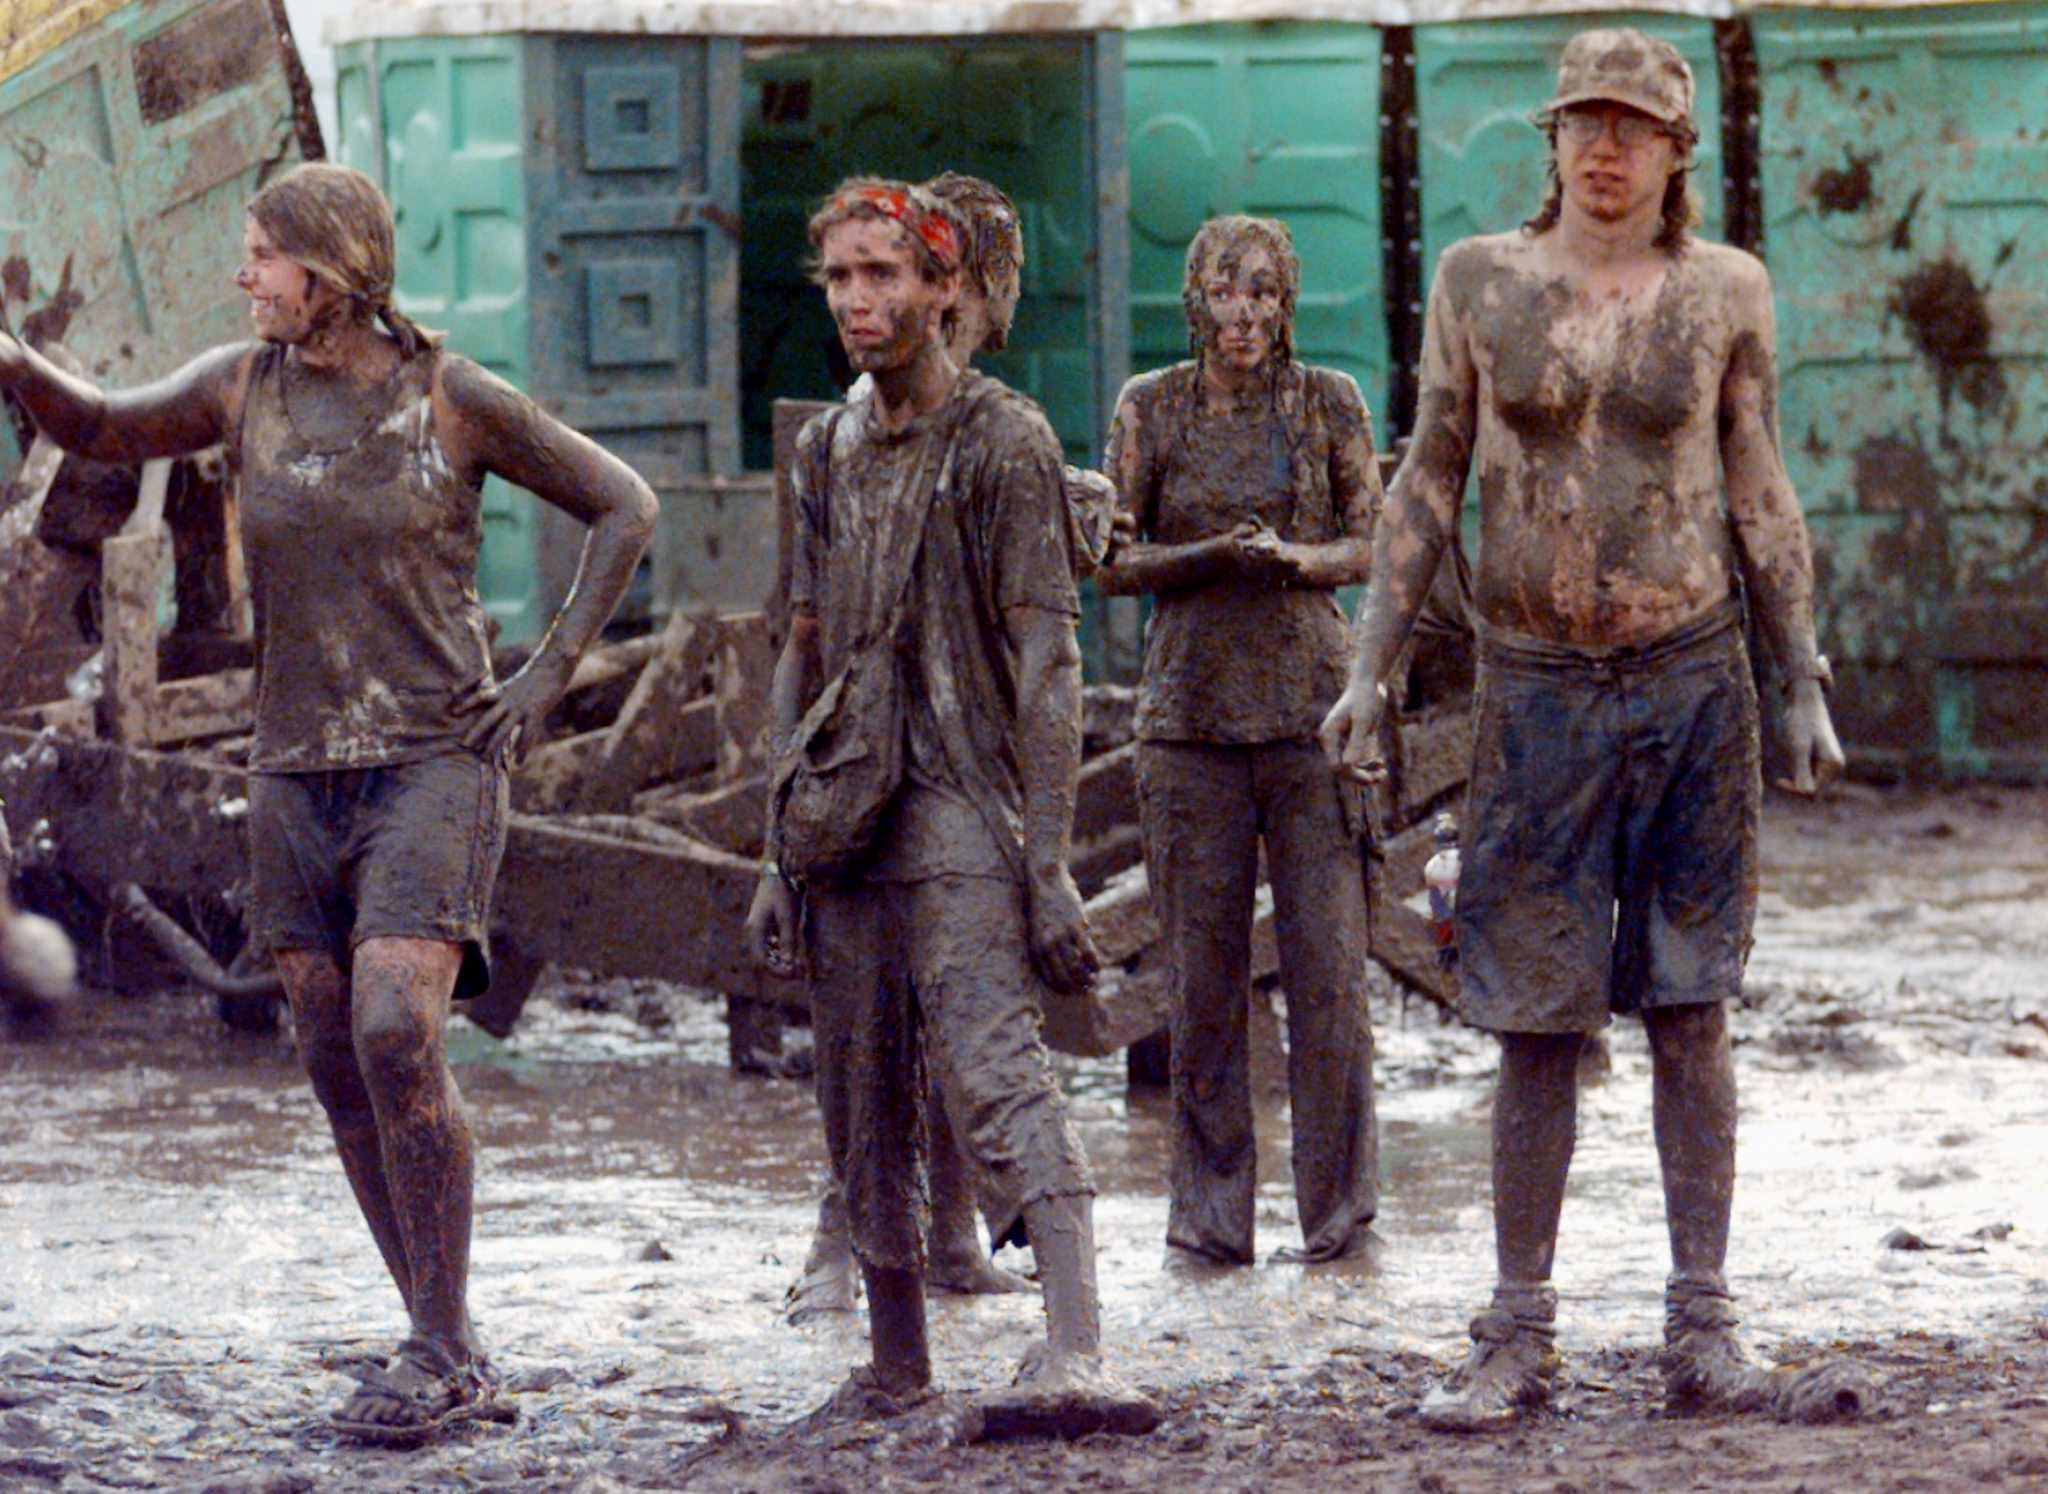 It looks like mudders' day at Woodstock '99, the 30th anniversary of the Woodstock festival, July 23, 1999 at Rome, N.Y.